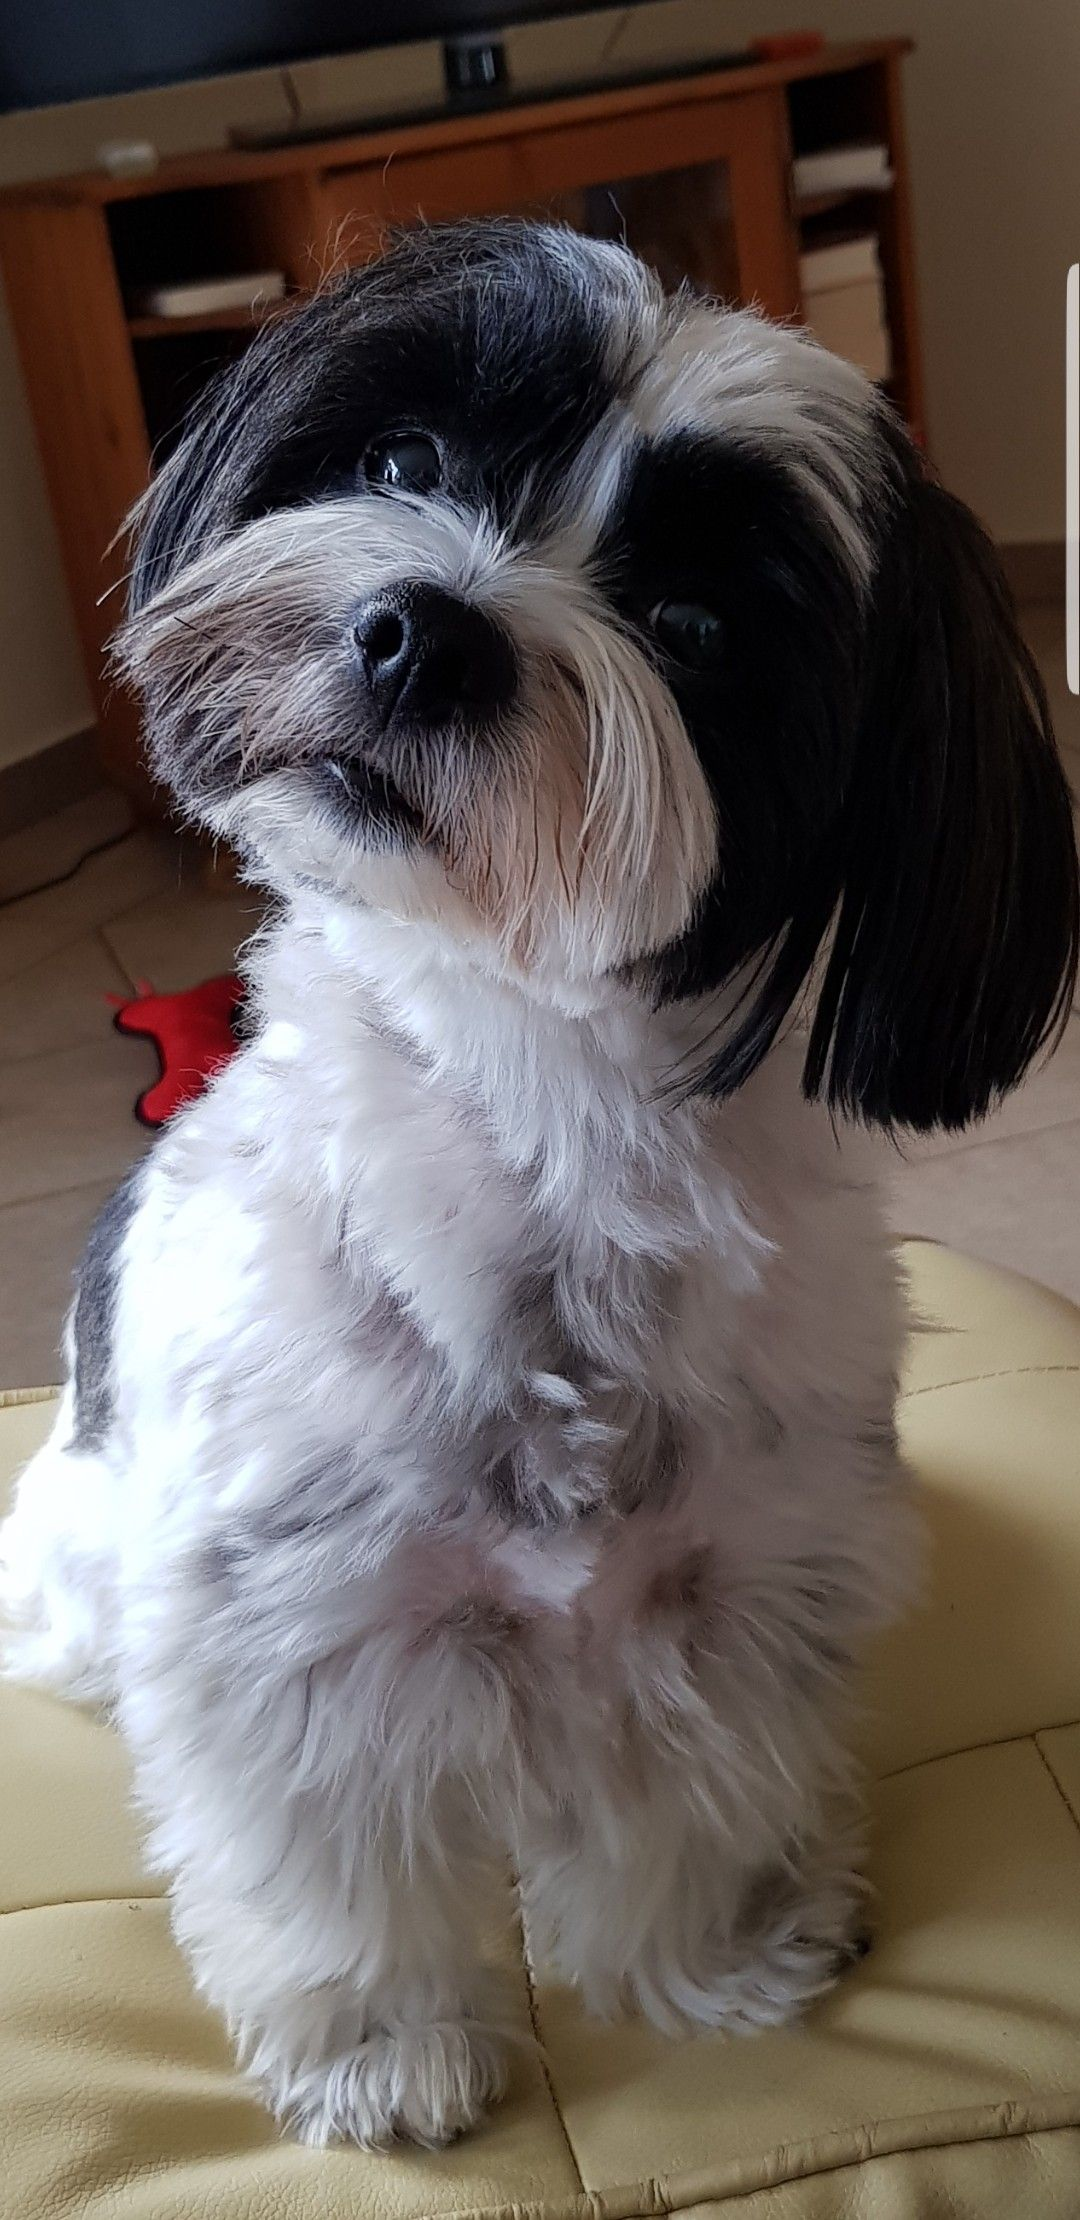 Shih Tzu Bobby Shih Tzu Pretty Dogs Cute Puppy Pictures